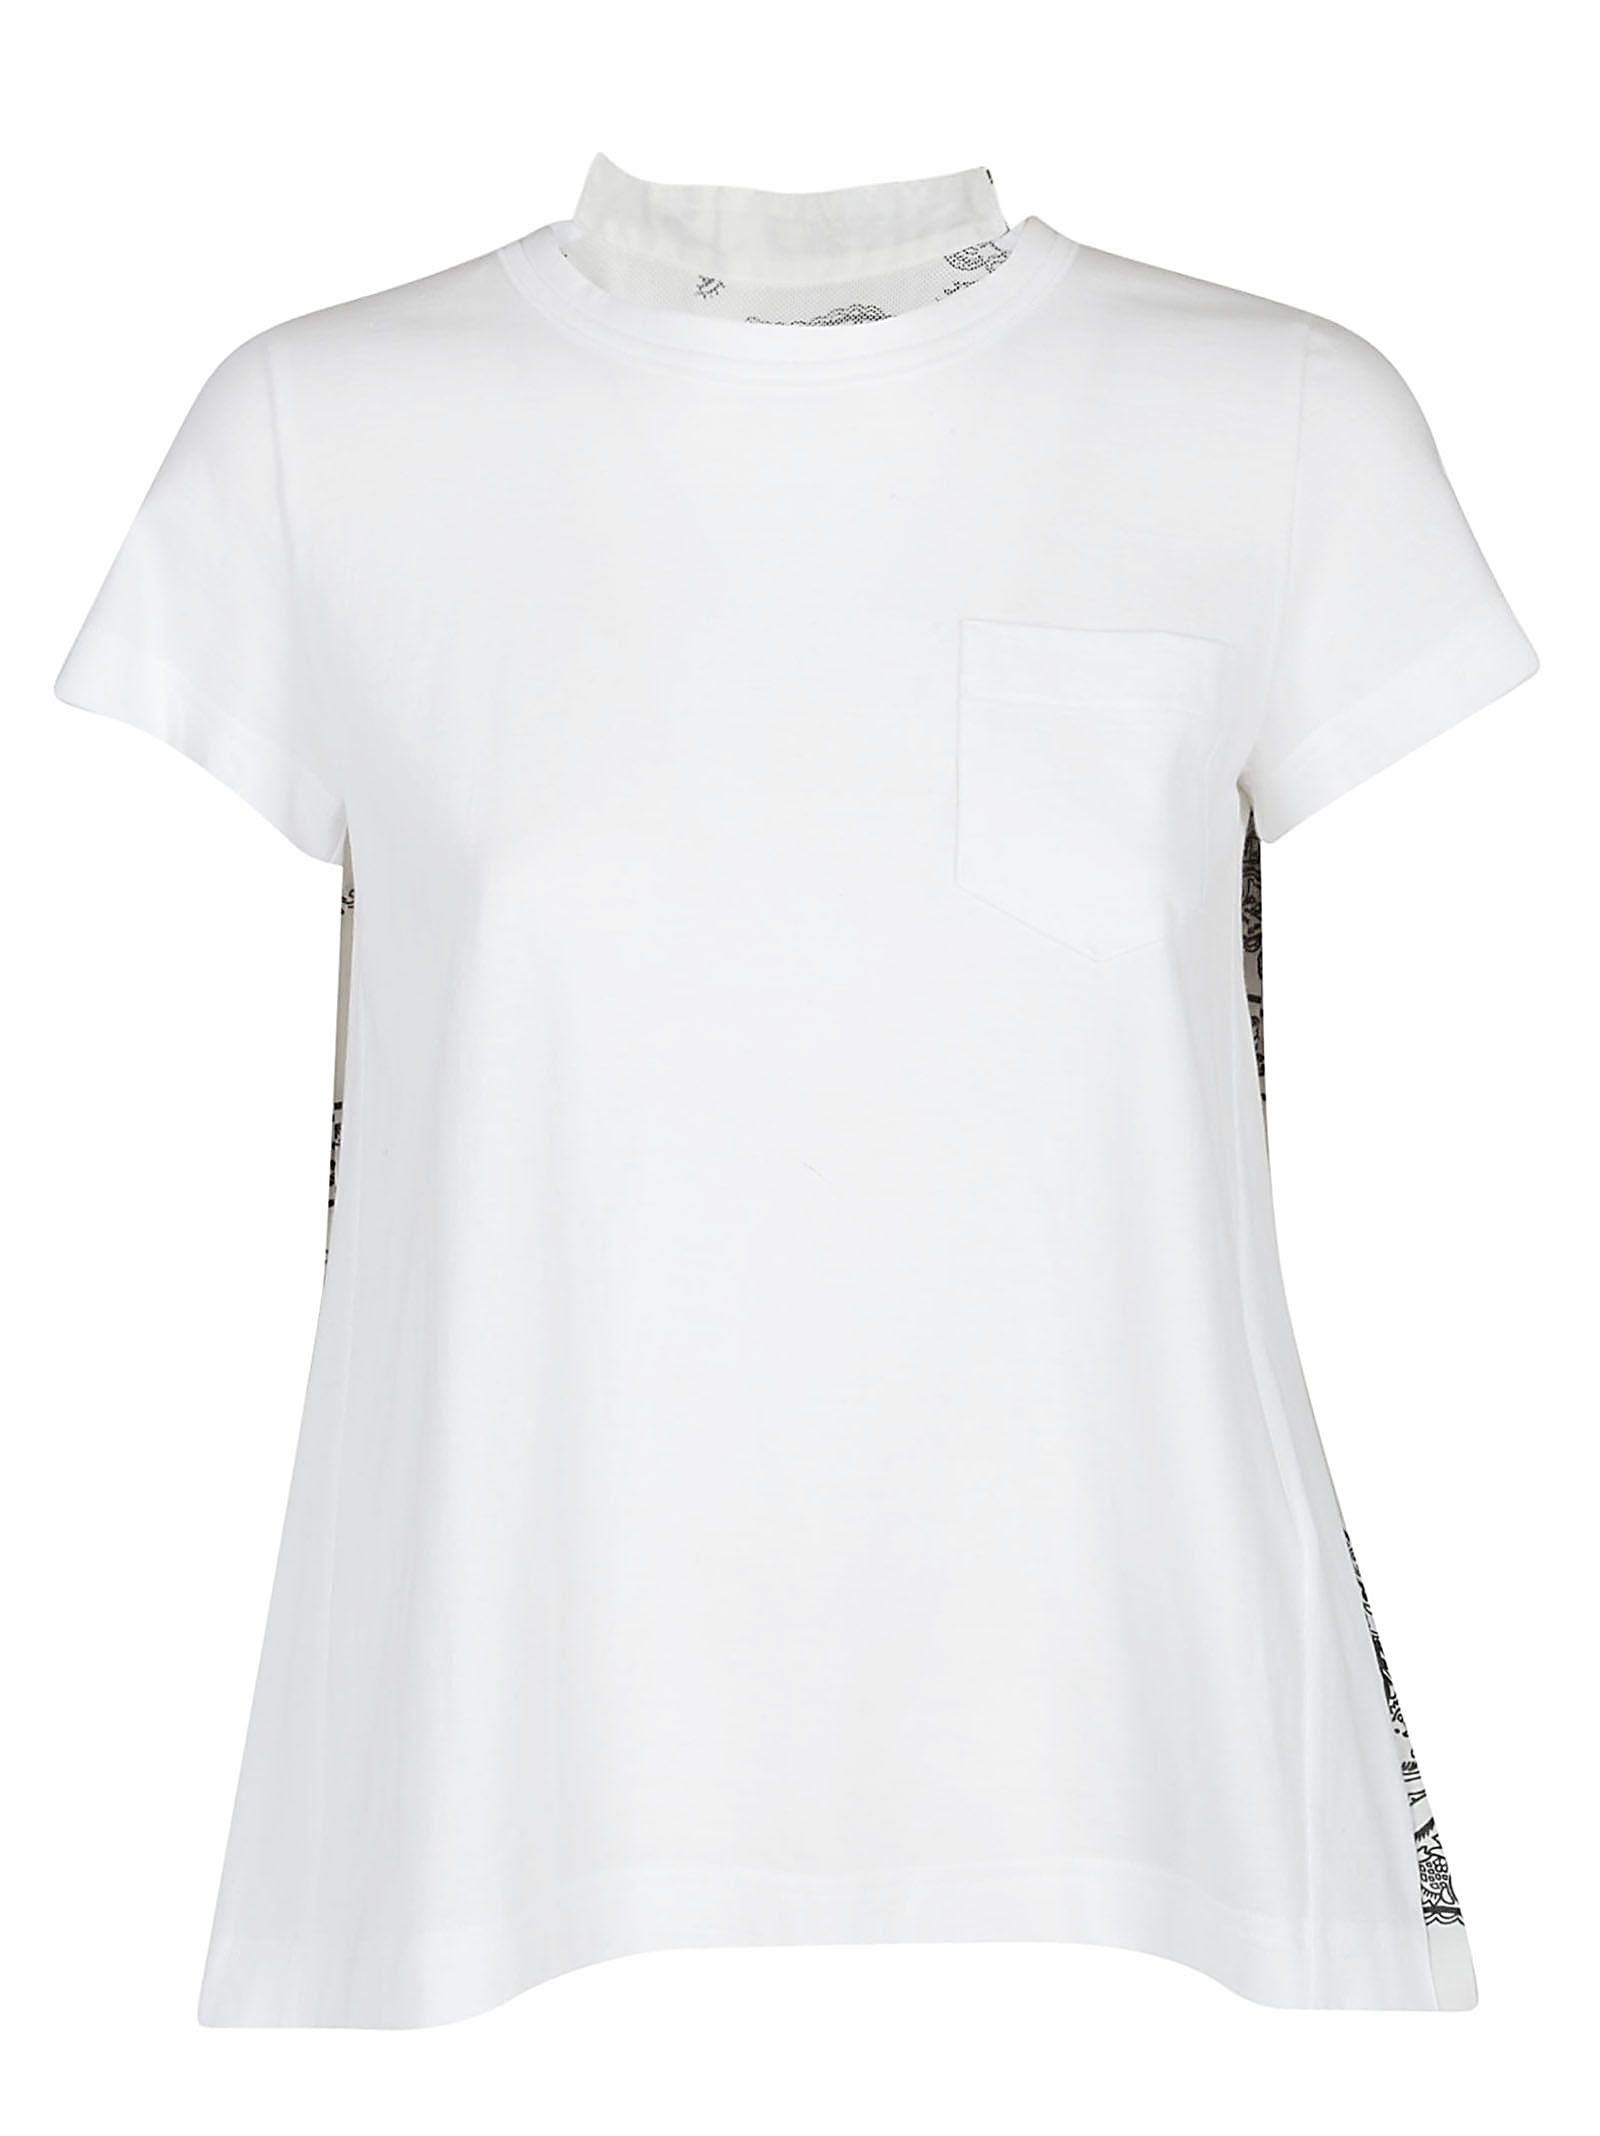 italist Sacai Sacai White price for the Best shirt market T in YYq0wAr e4af07ba37